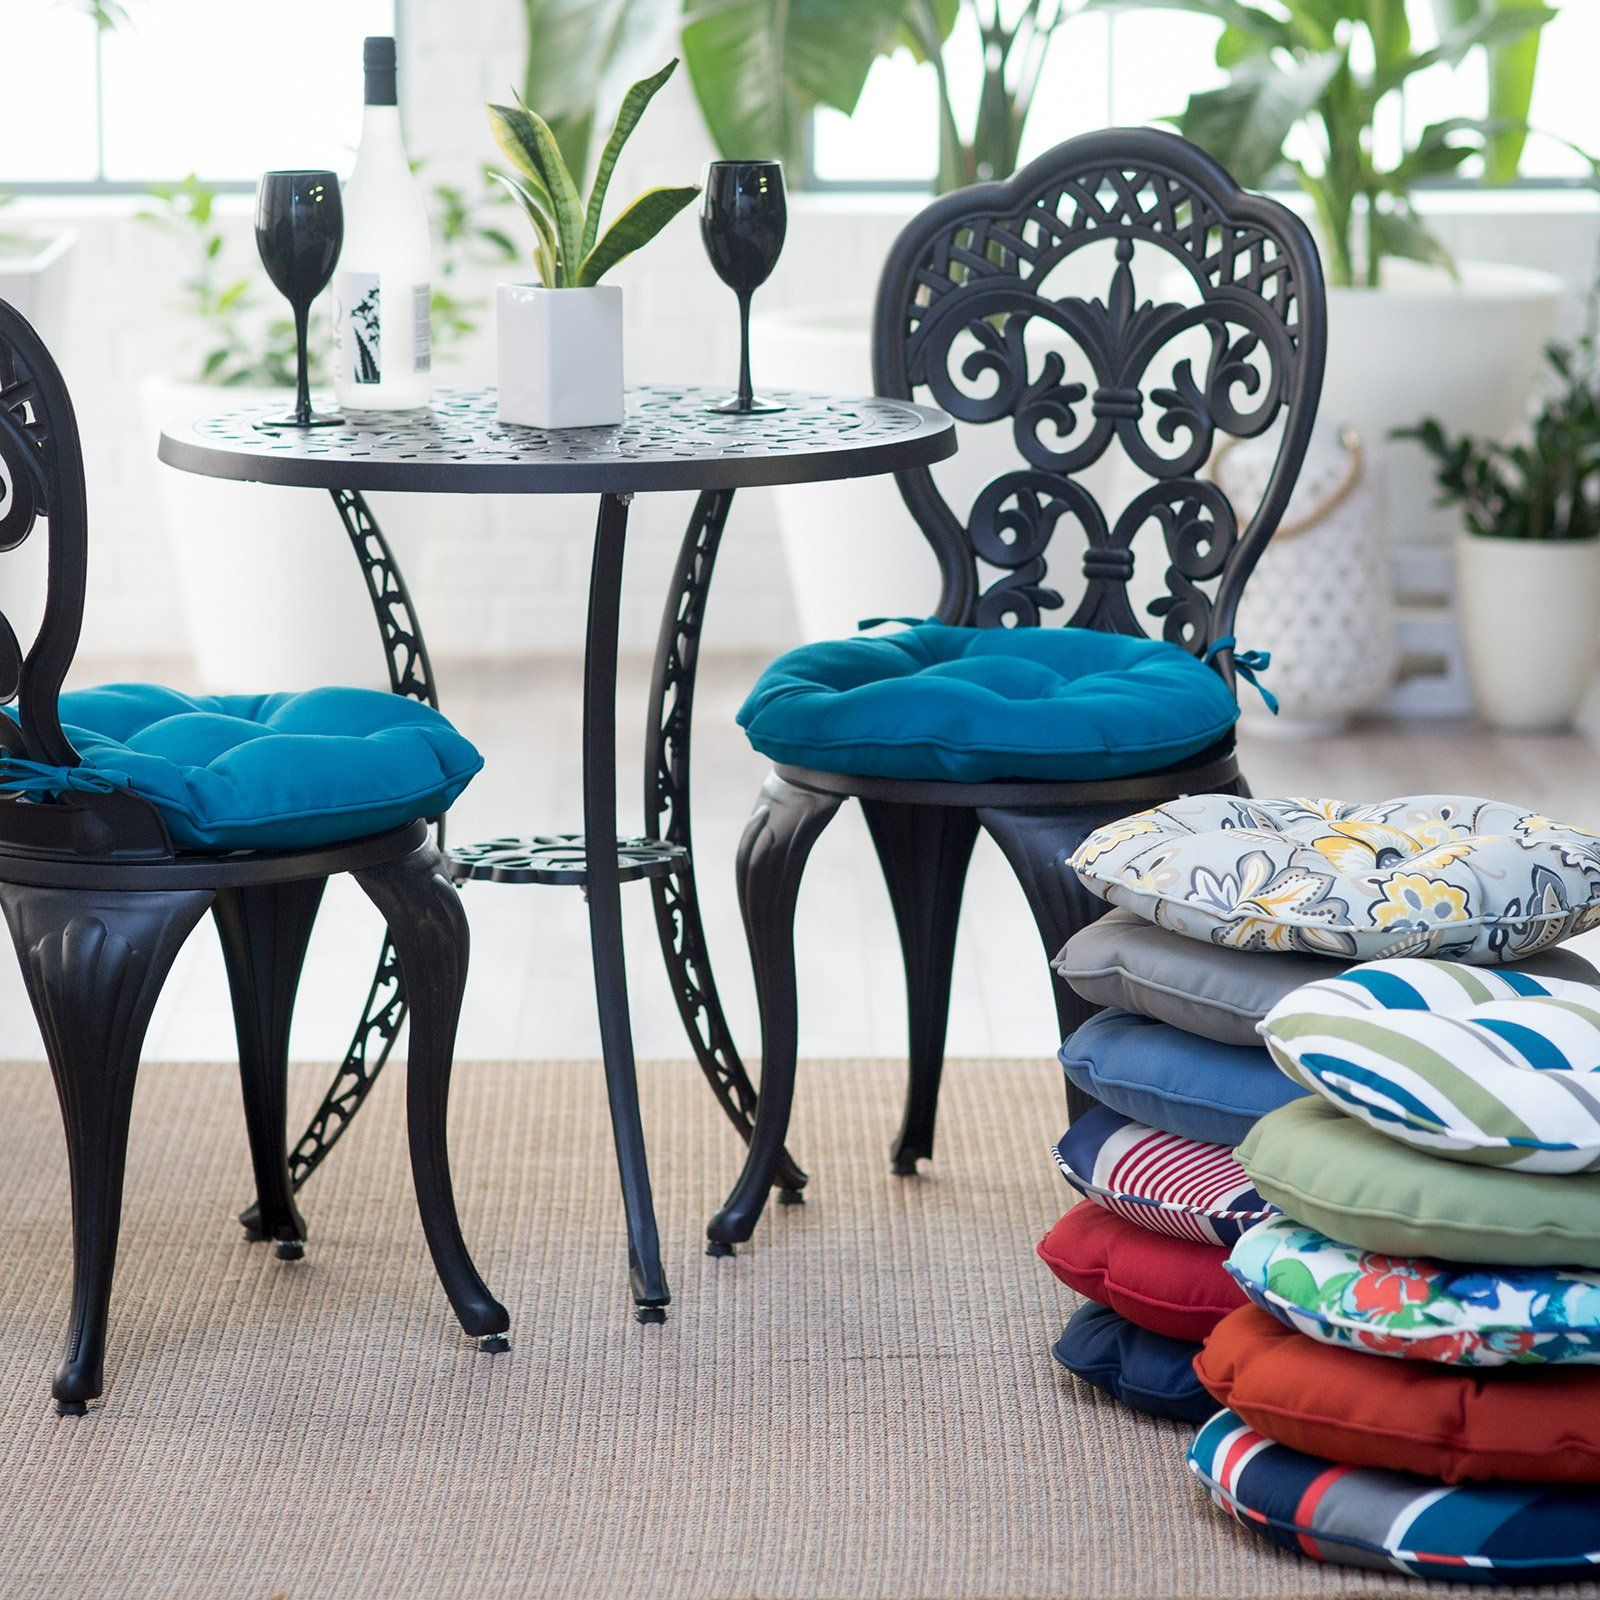 Patio Chair Cushion Sets Outdoor Seat